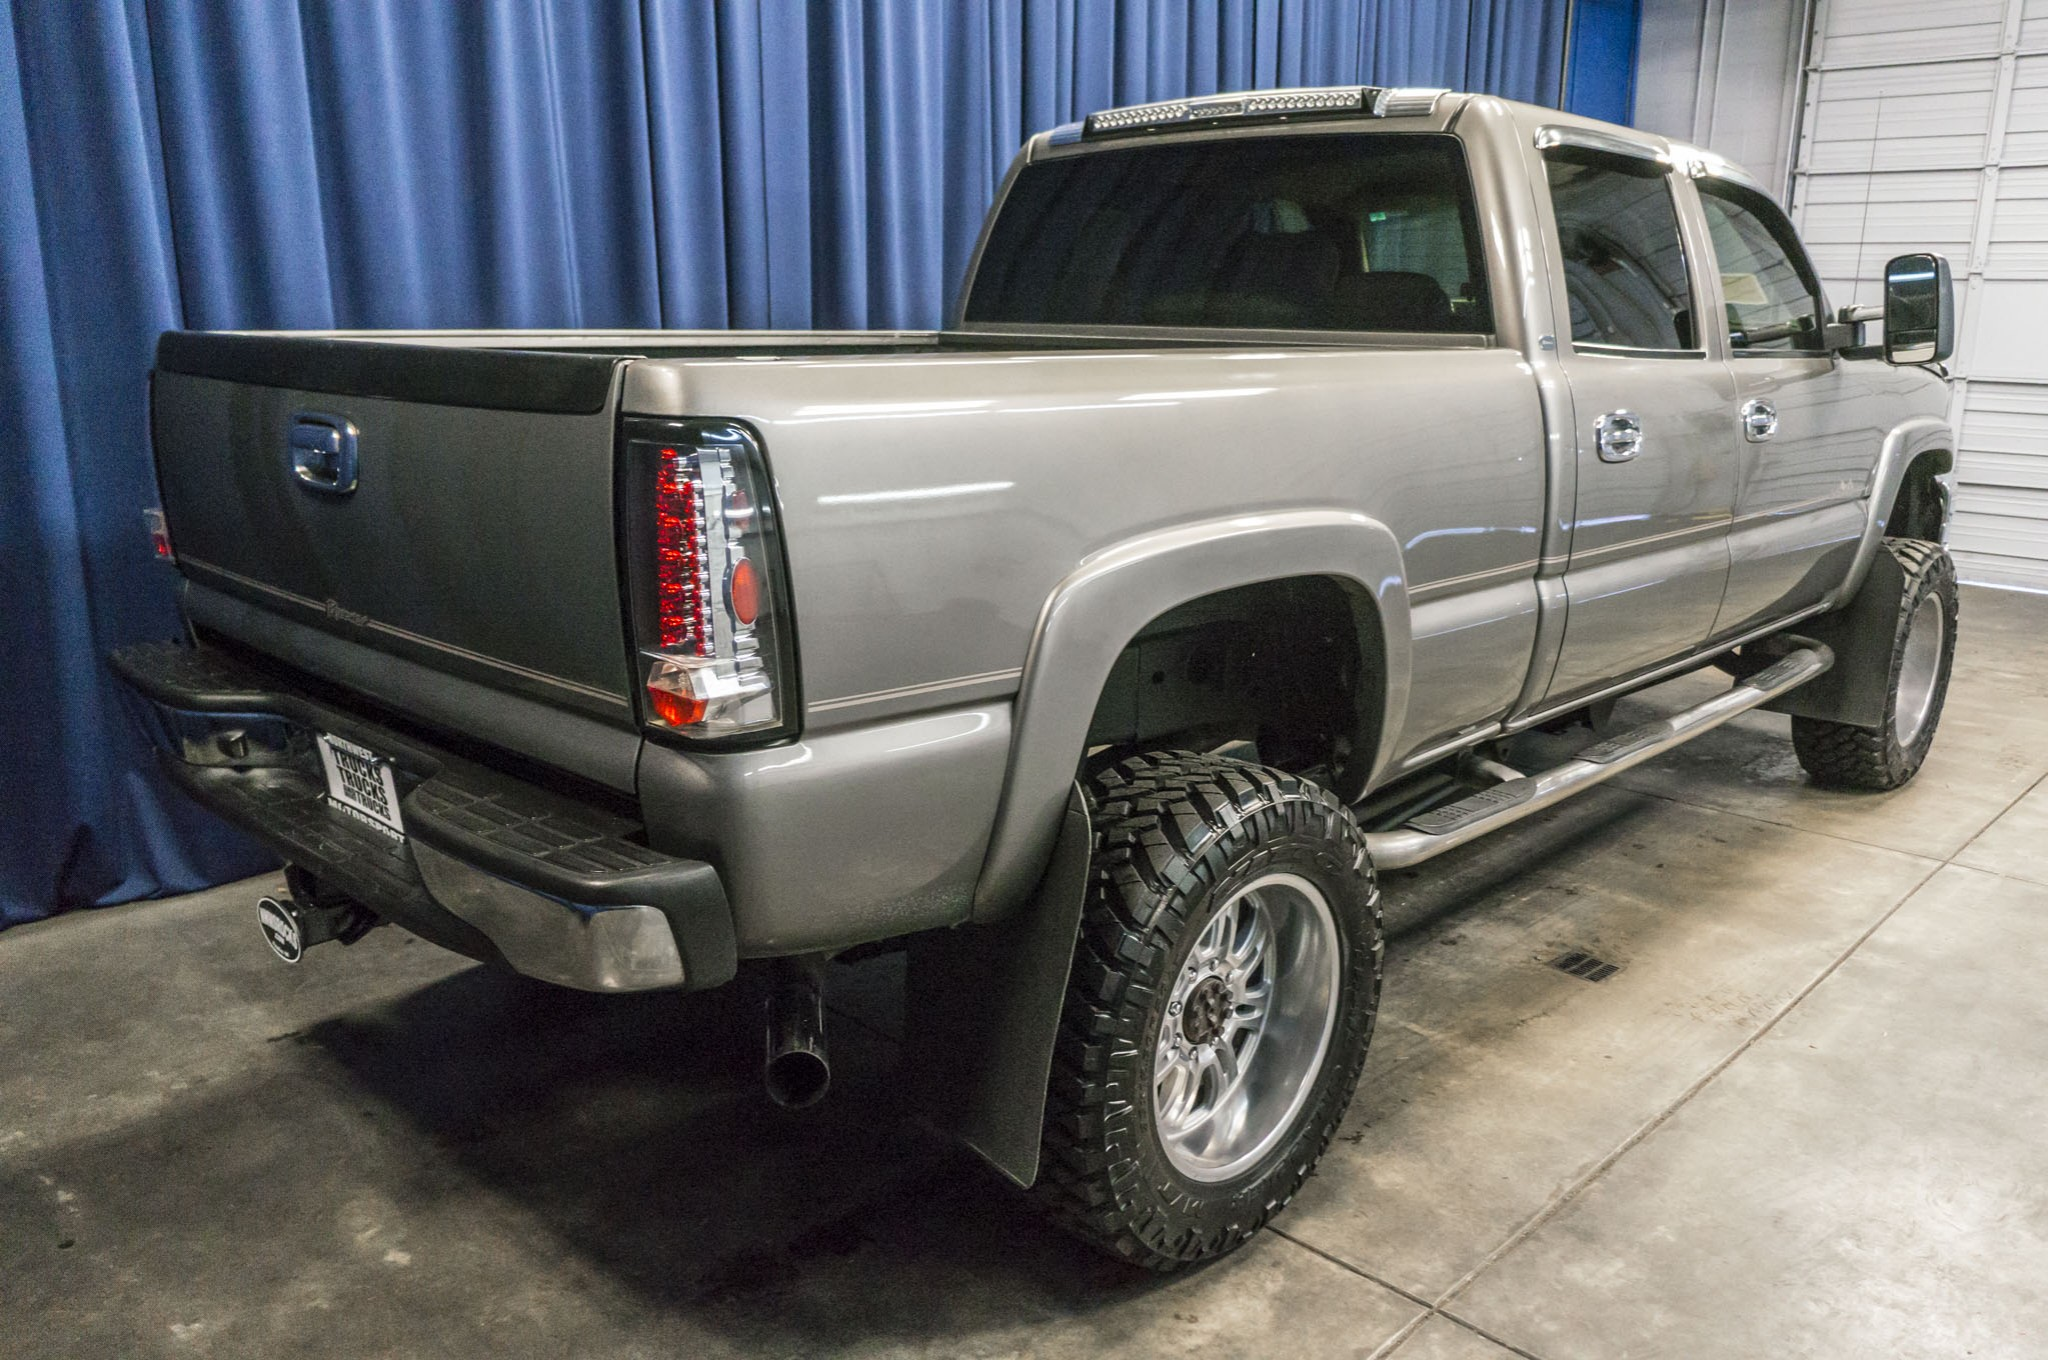 used lifted 2006 chevrolet silverado 6 6 lbz duramax diesel 2500hd diesel truck for sale 36457a. Black Bedroom Furniture Sets. Home Design Ideas